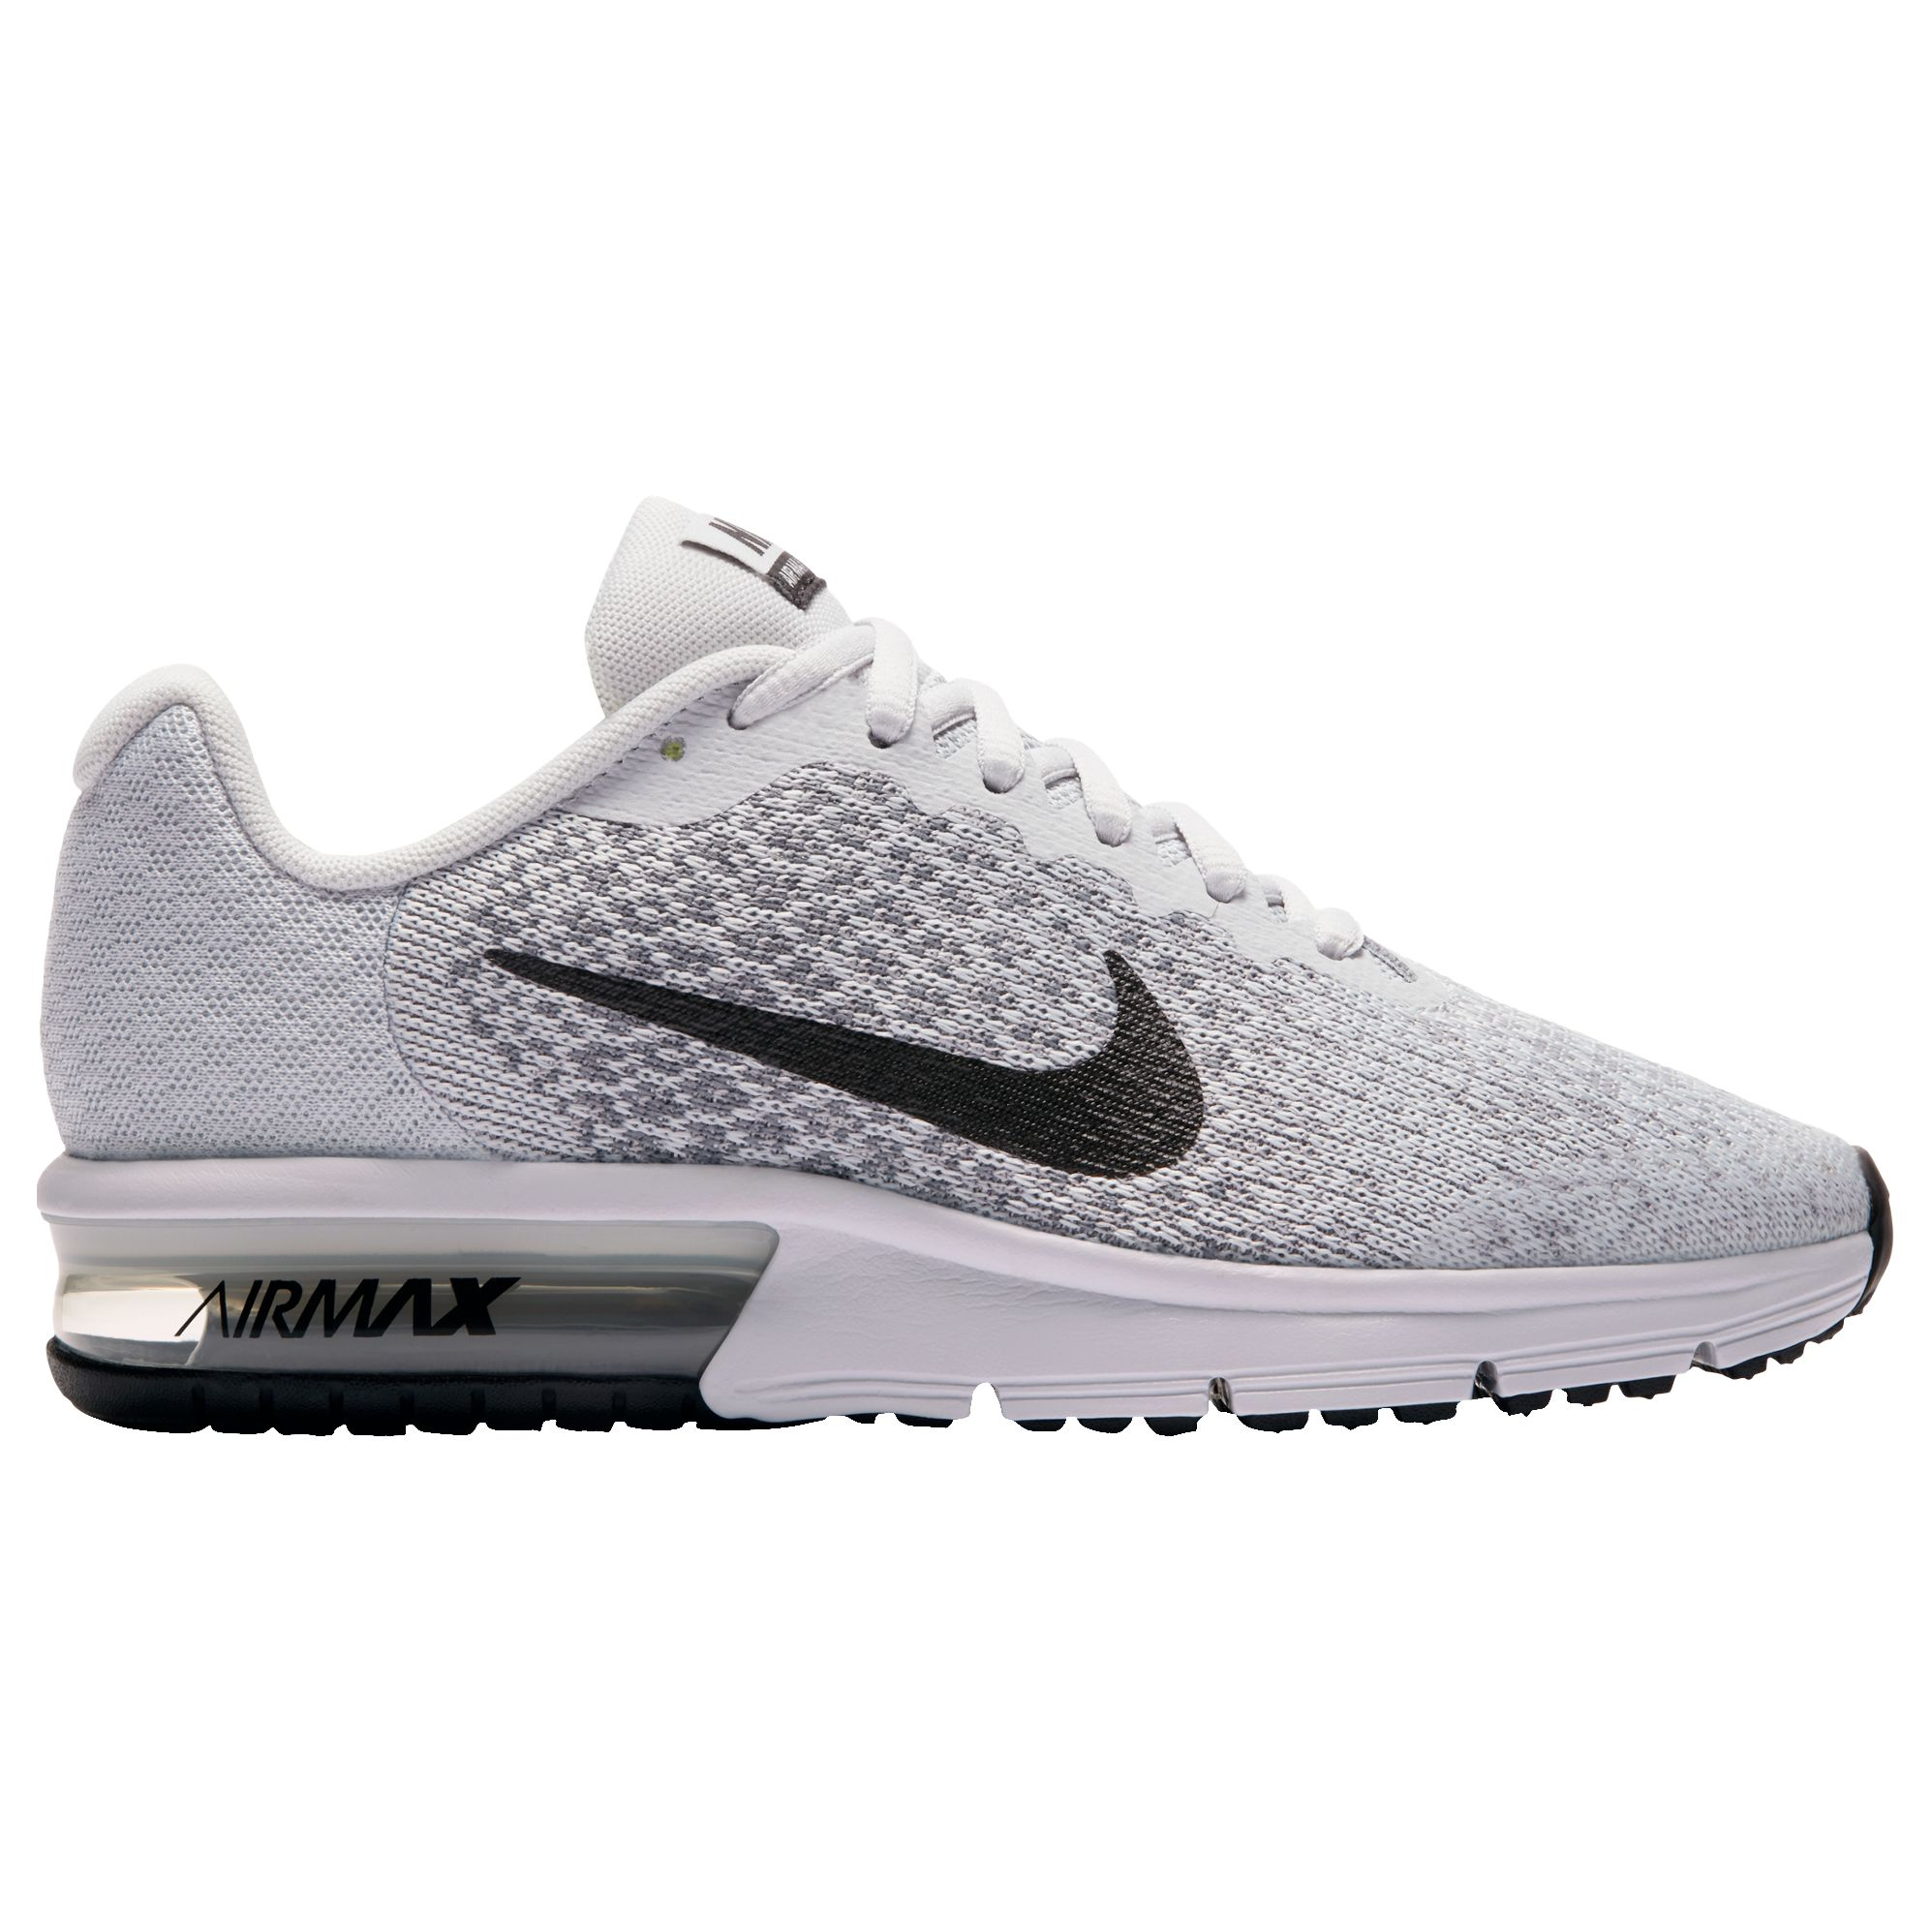 5dda83f5ea5 Nike Children s Air Max Sequent 2 Trainers